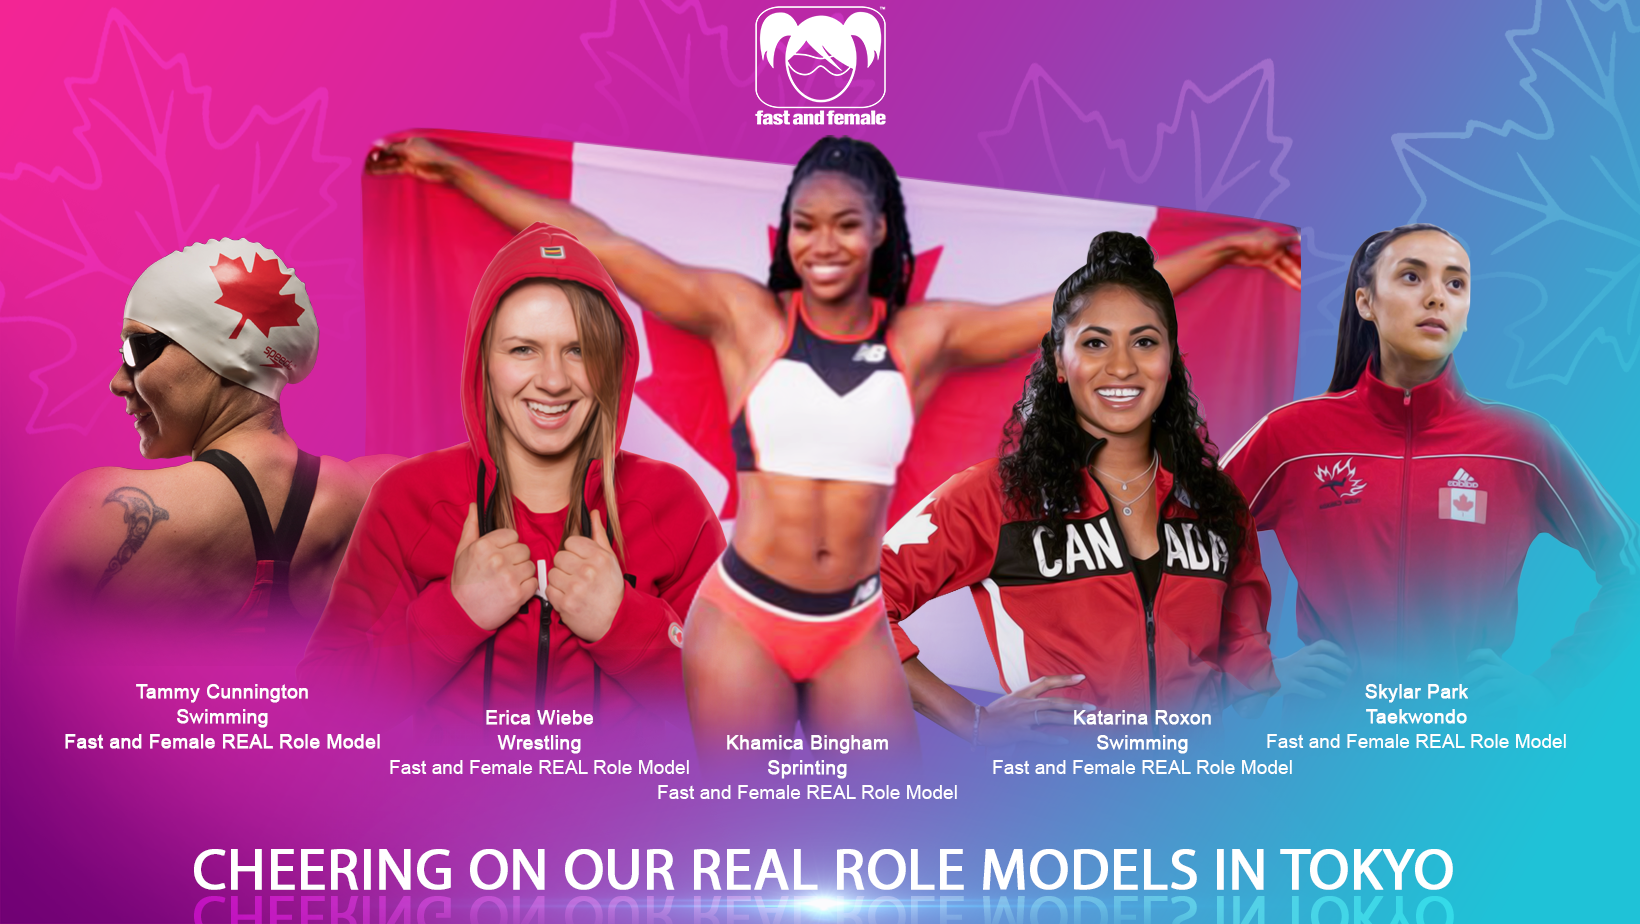 Fasta-and-female-olympics-tokyo-2020-real-role-models